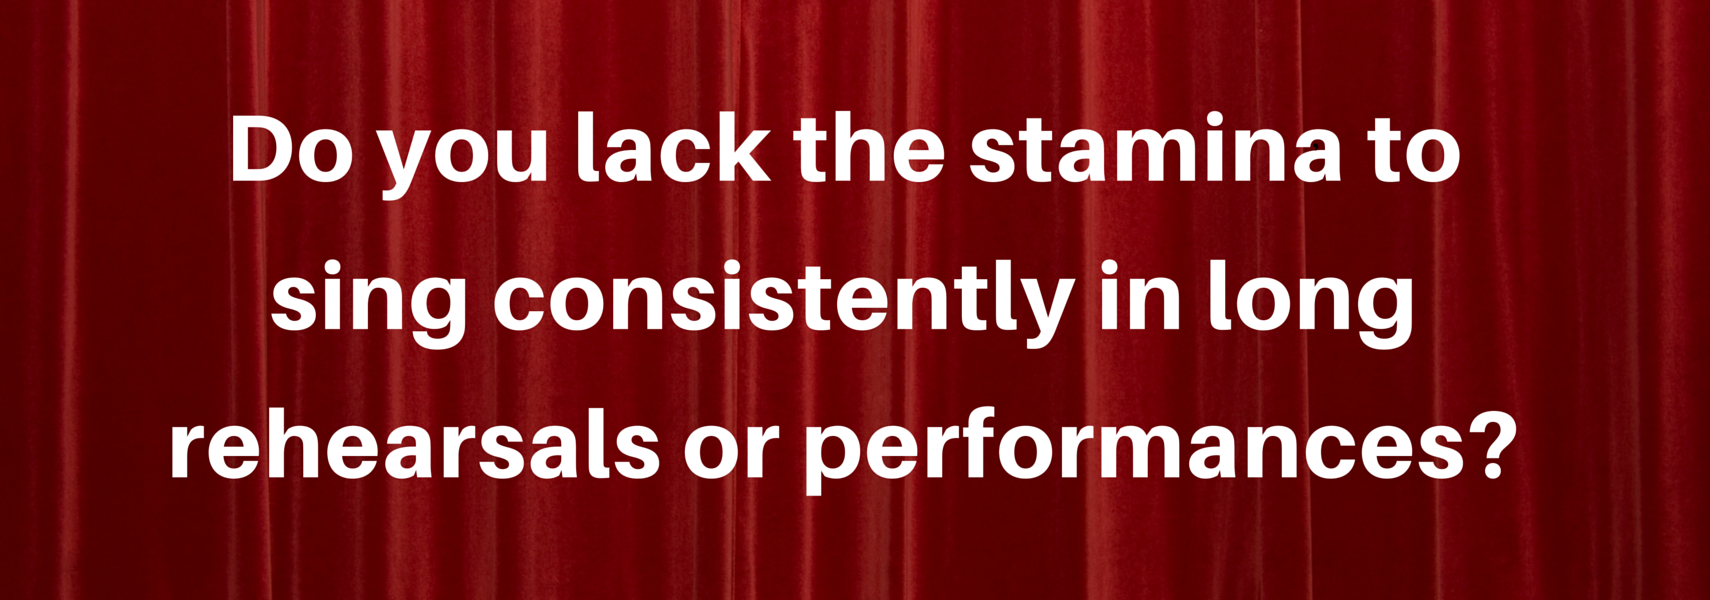 Do you lack the stamina to sing consistently in long rehearsals or performances?